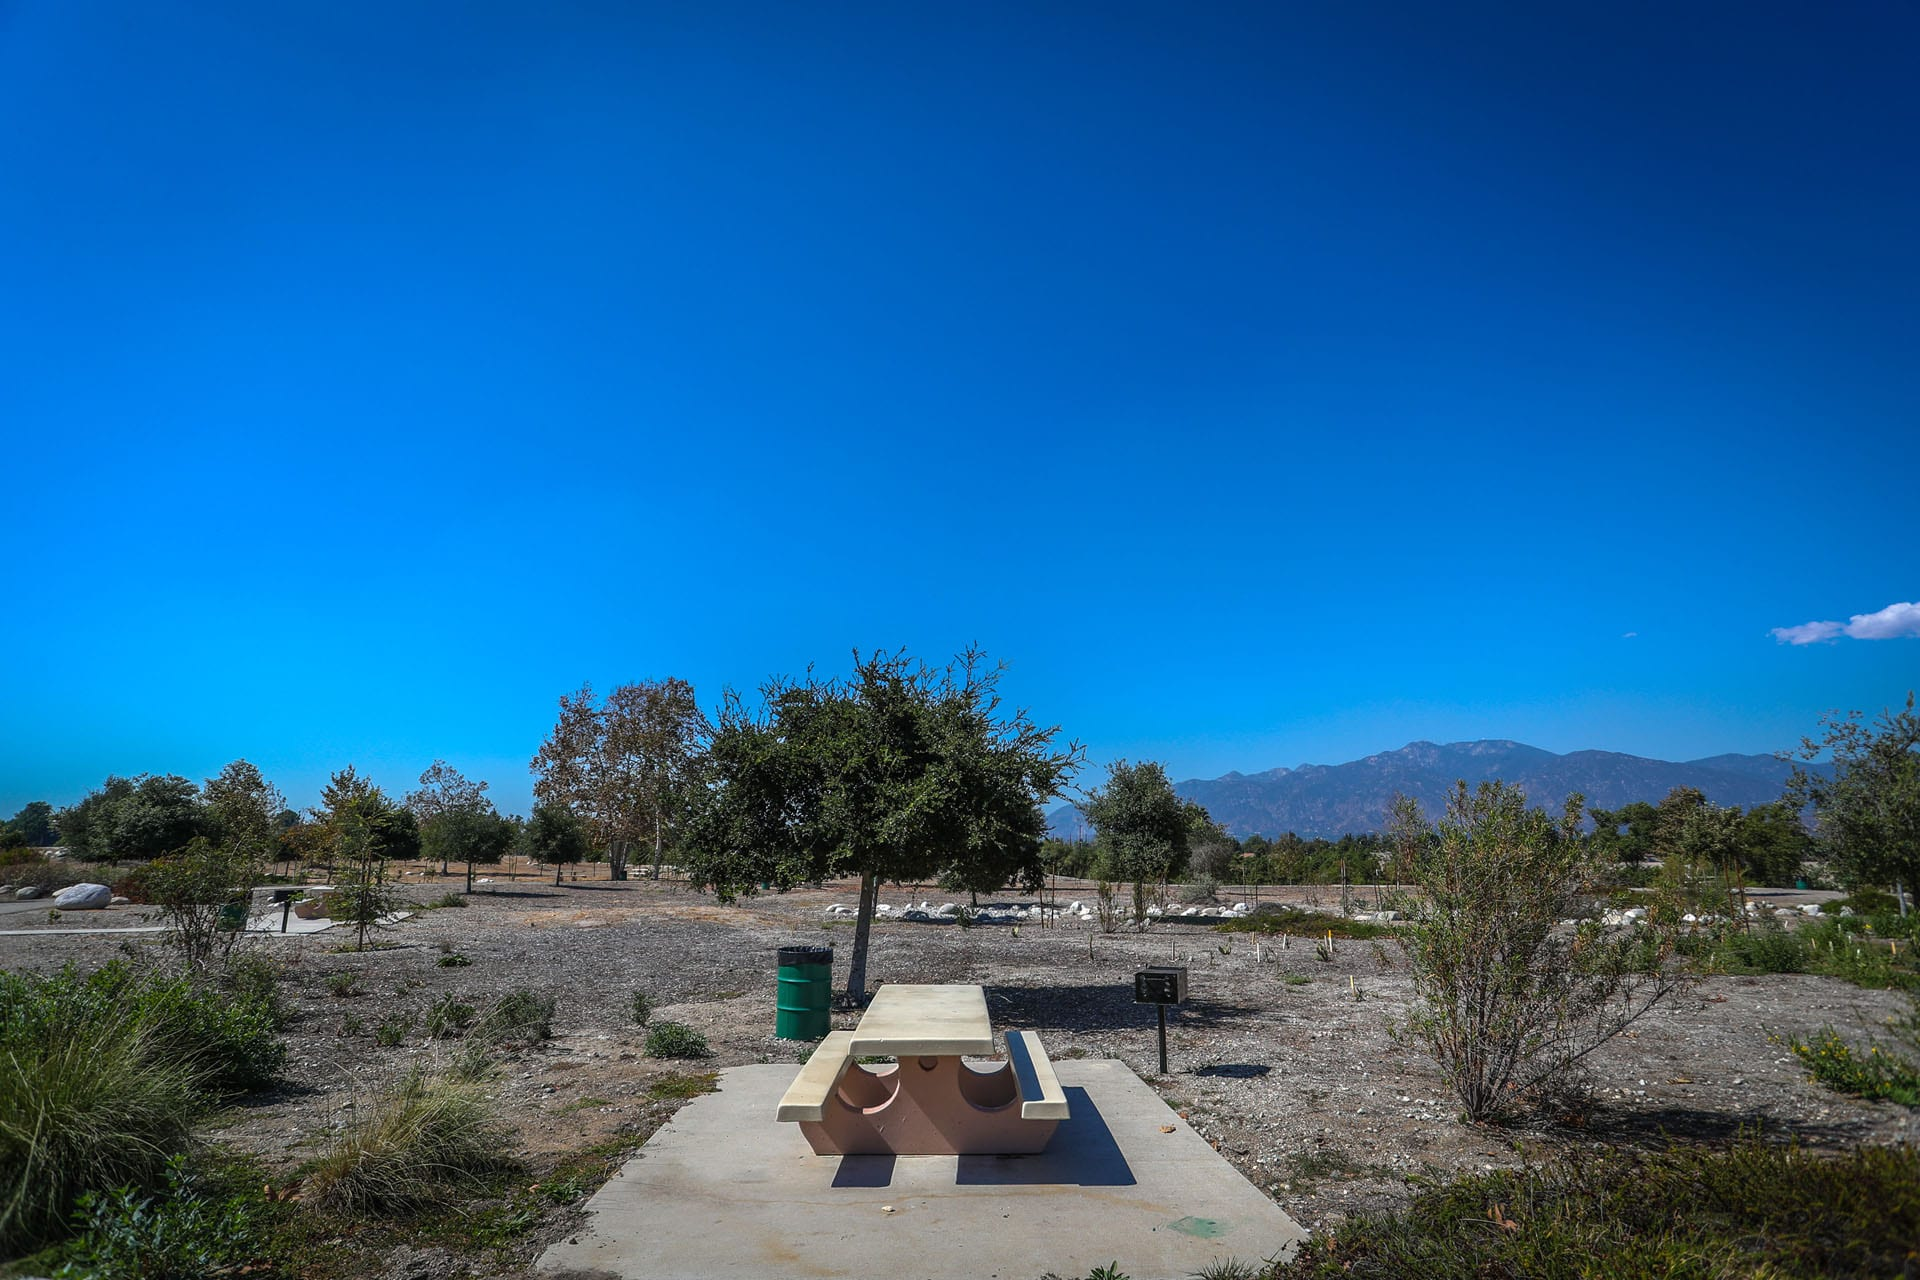 Picnic table, BBQ grill and trash can among trees, shrubs and a vibrant blue sky